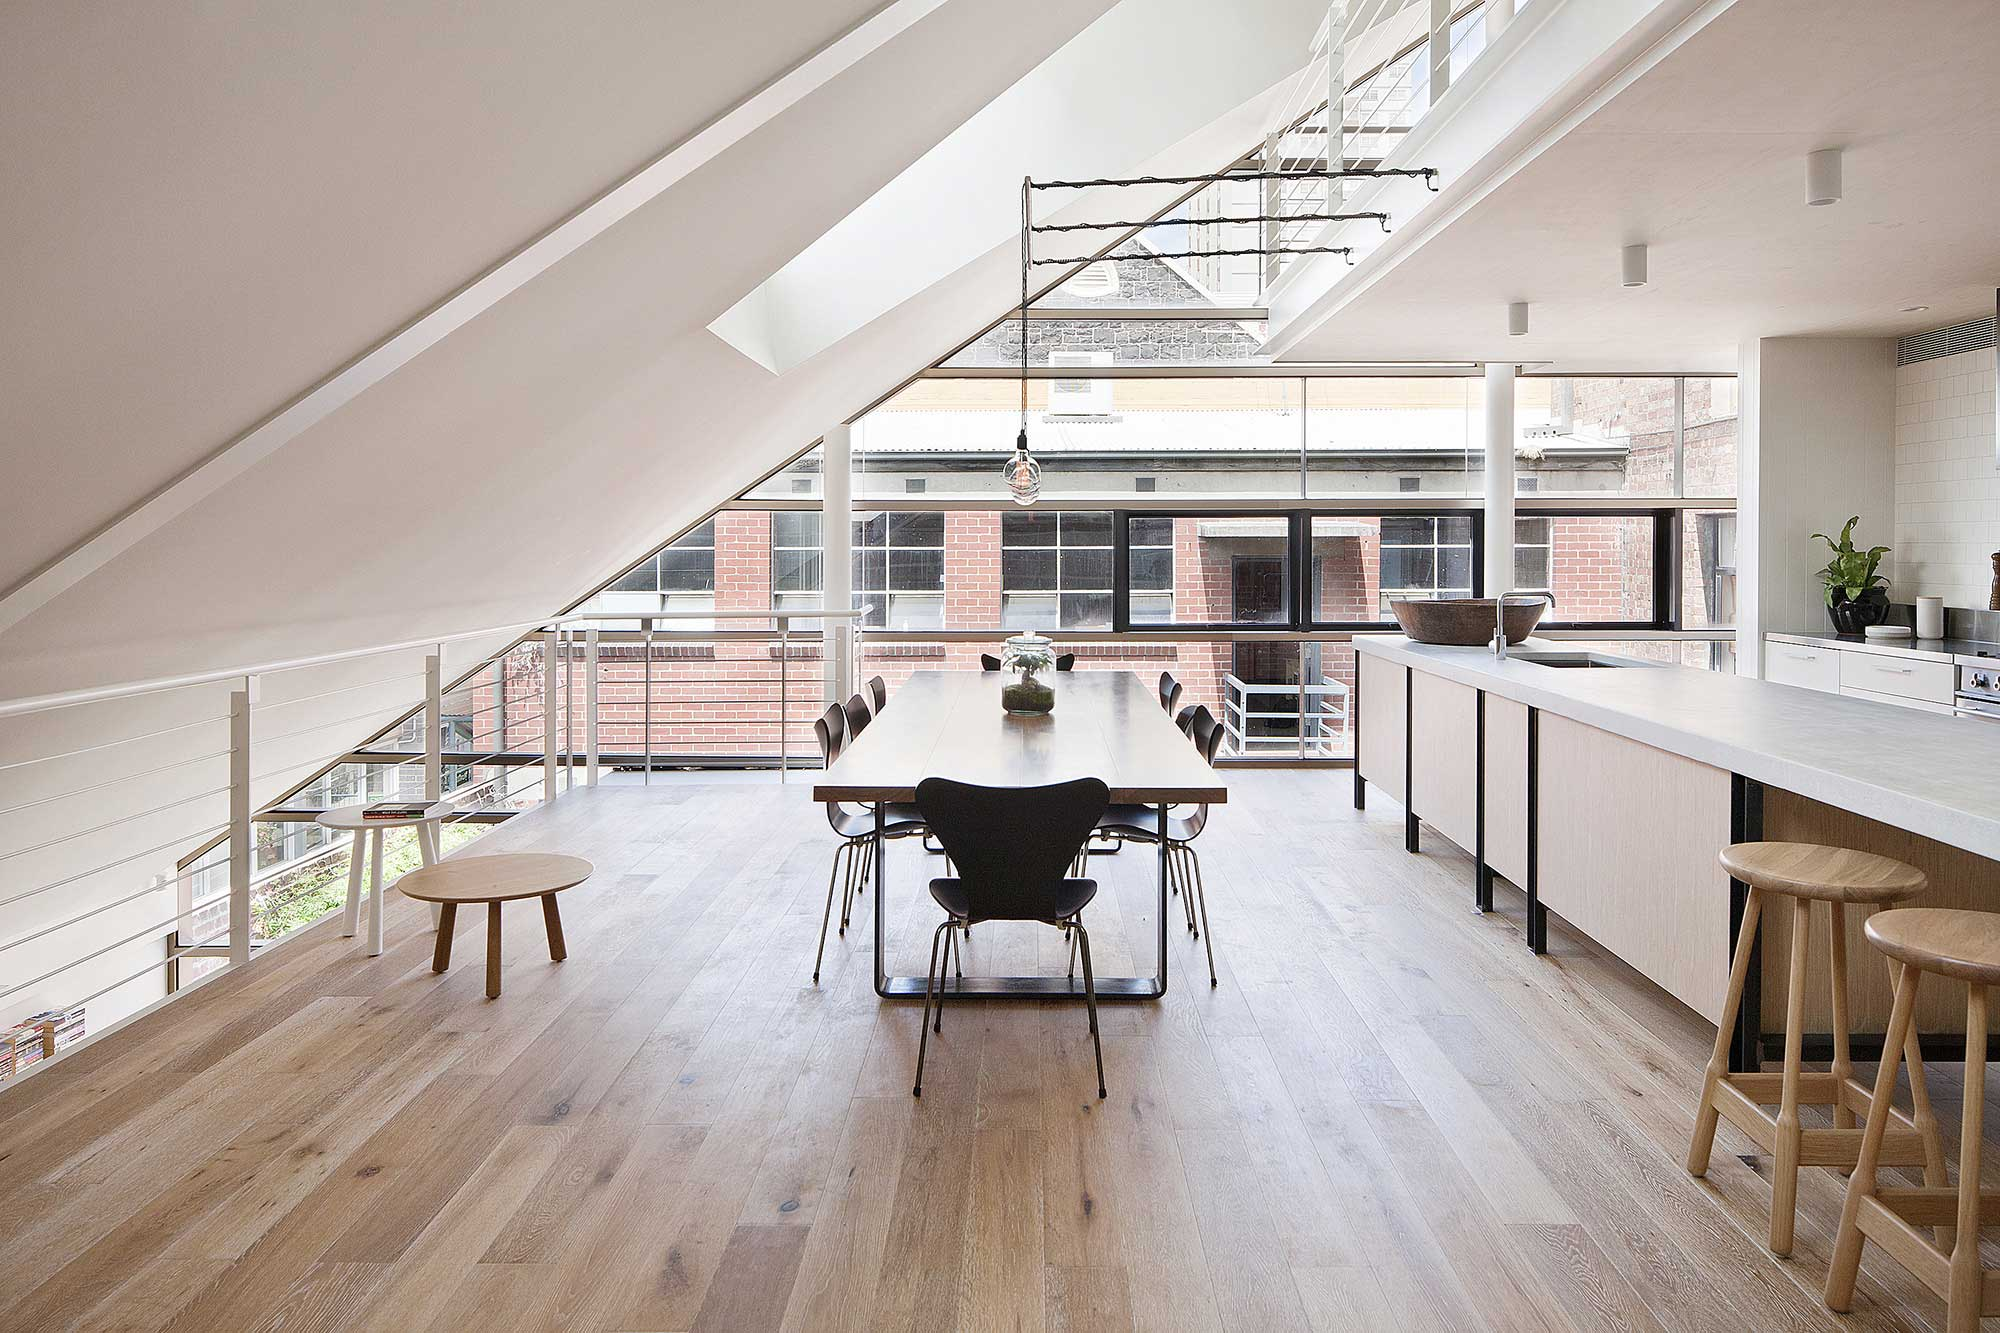 Moor Street Studio & Apartment par Clare Cousins Architects